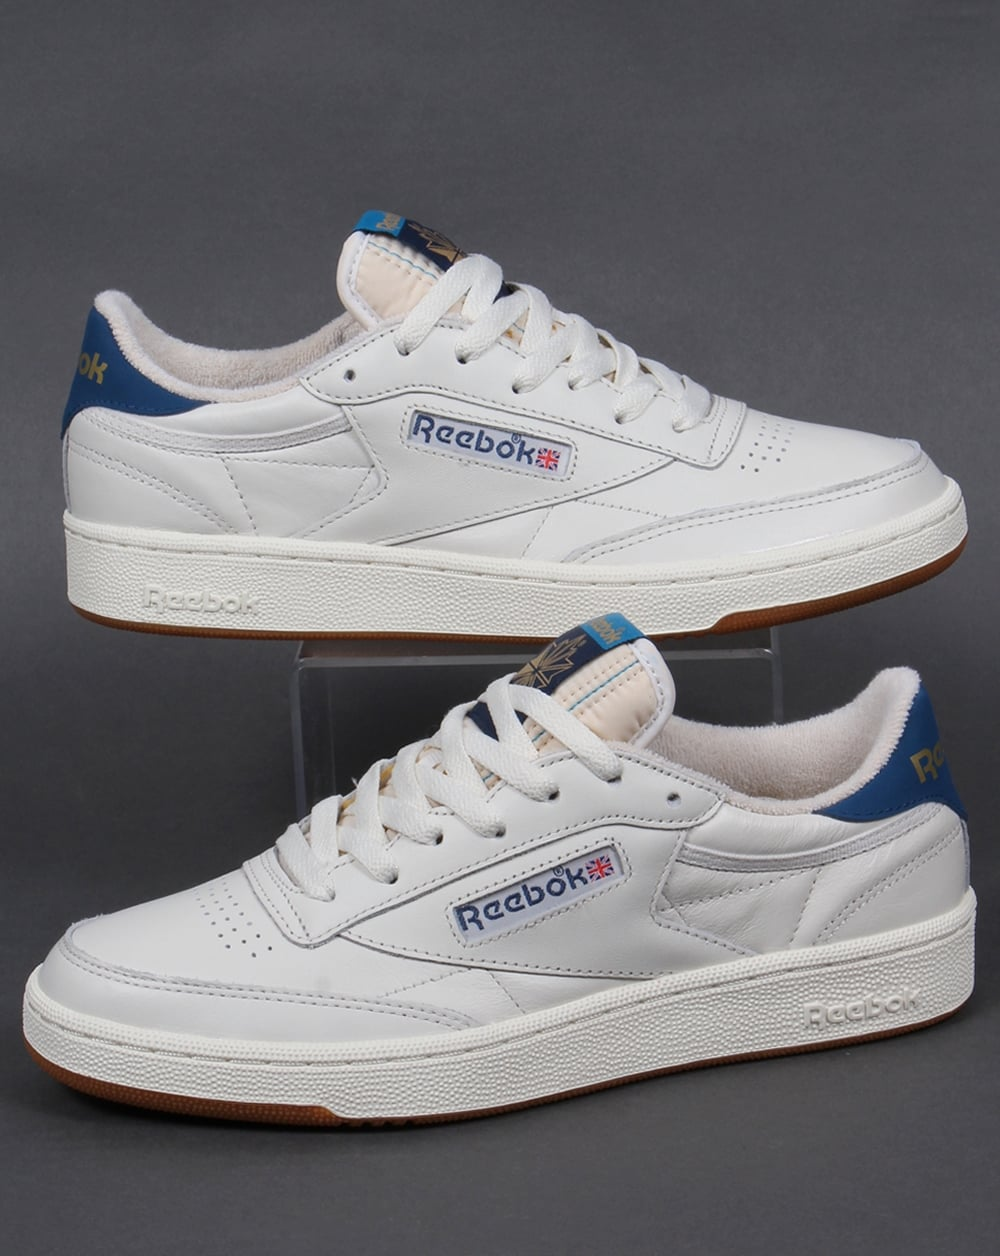 reebok club 85 retro trainers chalk white blue shoe gum mens. Black Bedroom Furniture Sets. Home Design Ideas